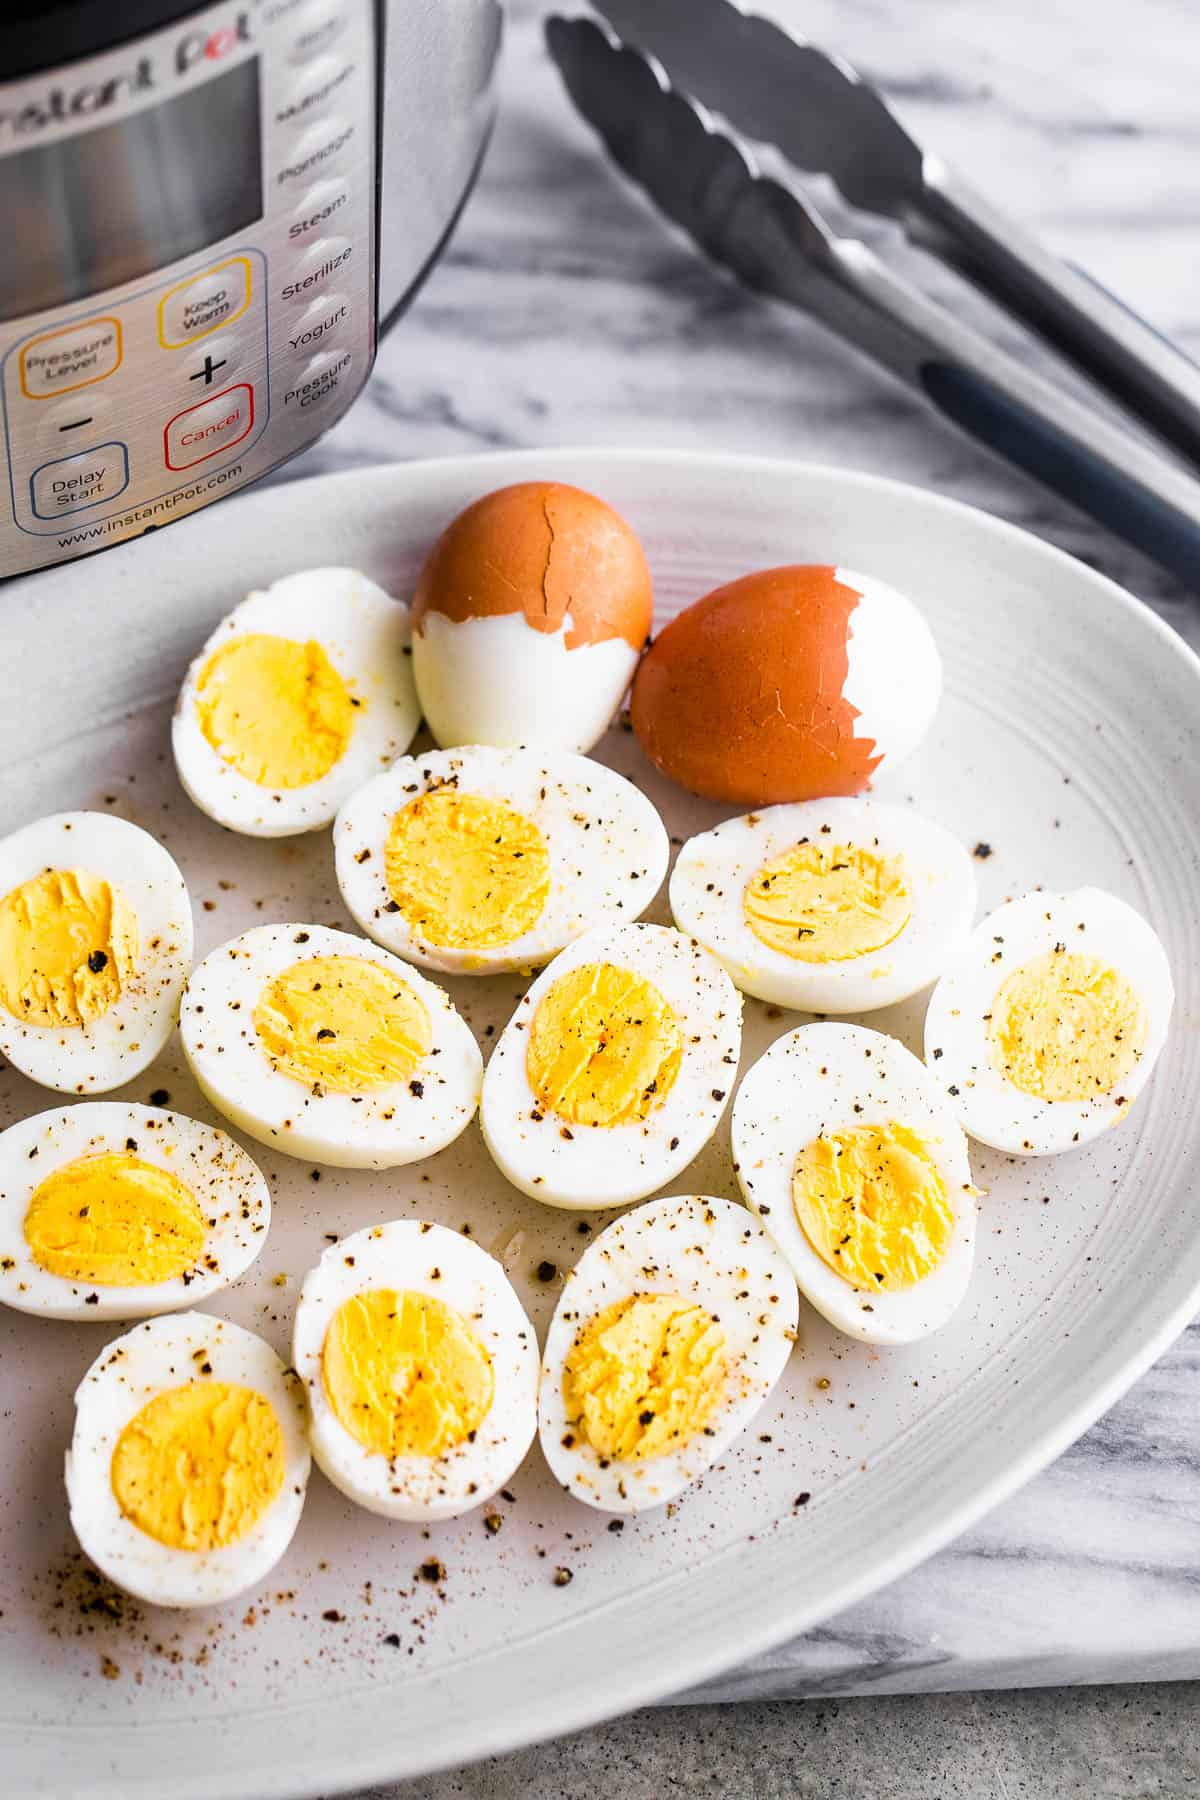 instant pot pressure cooked and a plate of hard boiled halved eggs